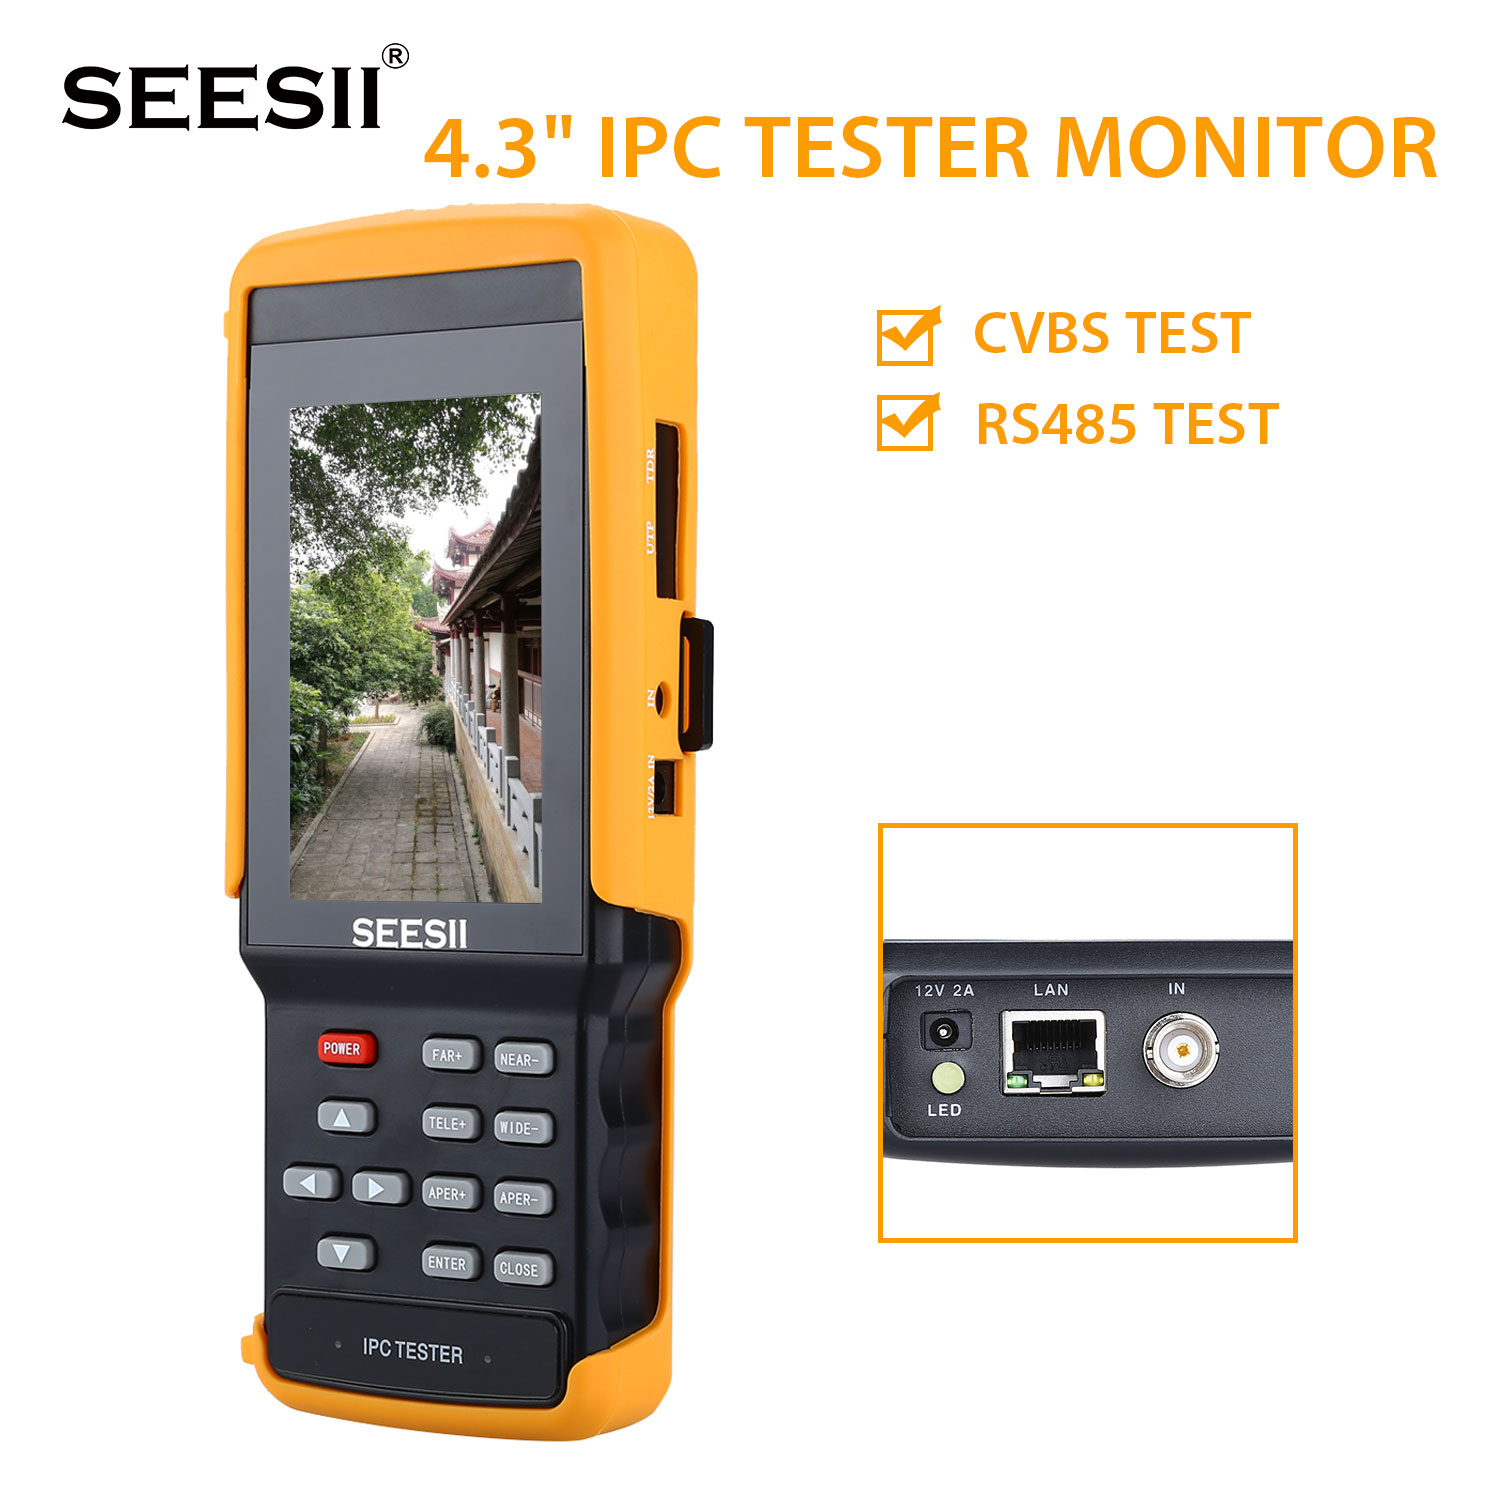 IPC9300 IPC/wifi/AHD/TVI/CVI/Analog 4.3'' Touchscreen CCTV Tester for IP/Analog Camera 1080P BNC Network Cable Tester WIFI 8GB voltega лампа светодиодная диммируемая voltega шар прозрачная e27 4w 2800k vg10 g95cwarm4w 7014